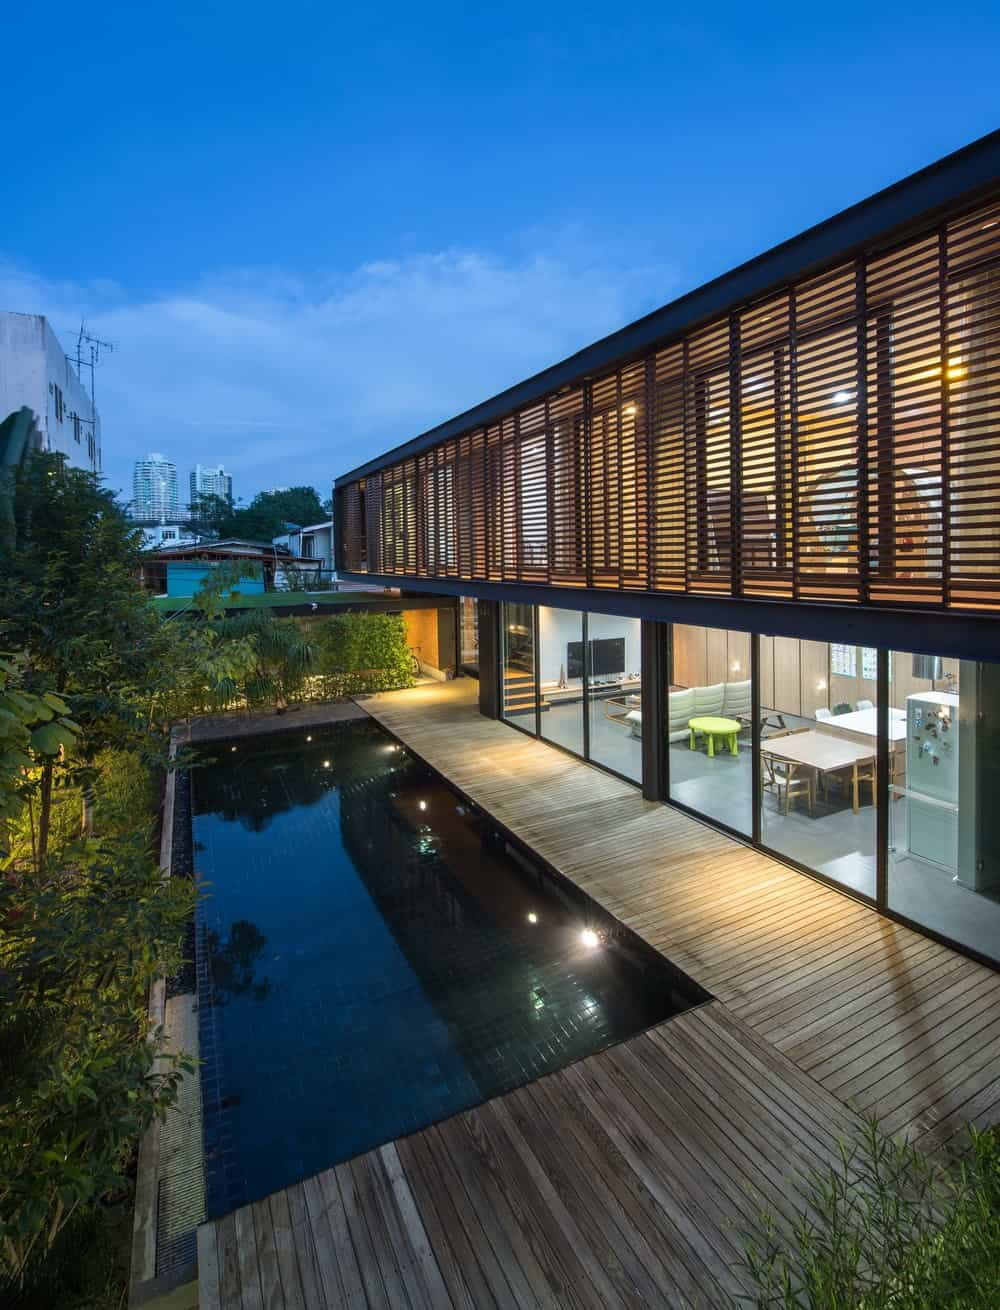 This view of the house makes the interiors of the ground floor show up with its lighting and glass wall.